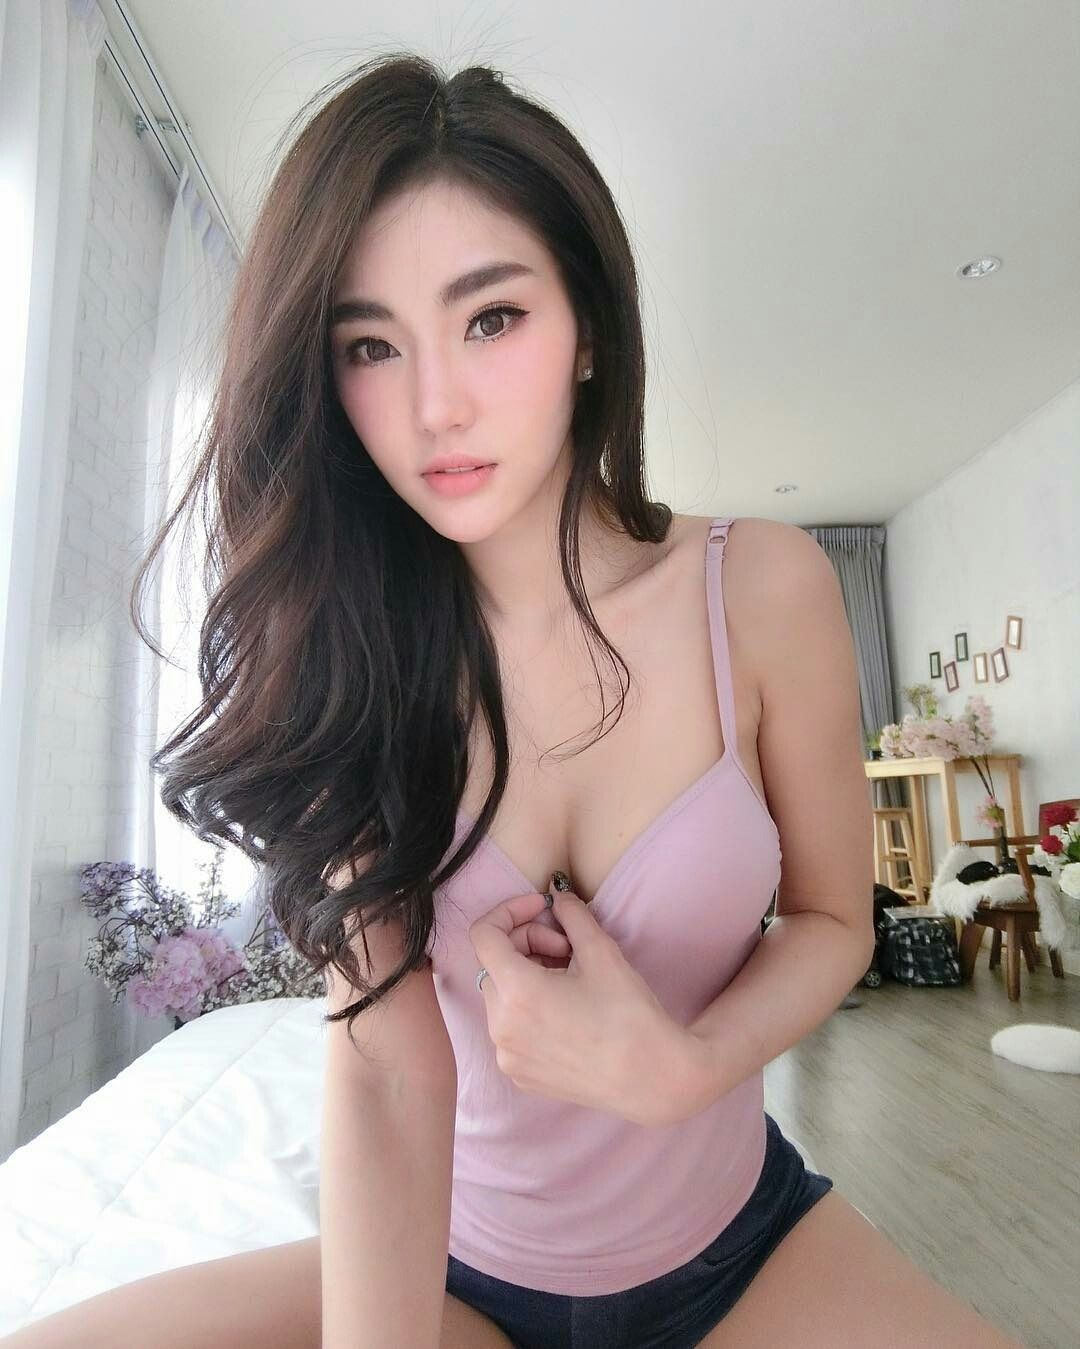 Teen girl with perfect boobs